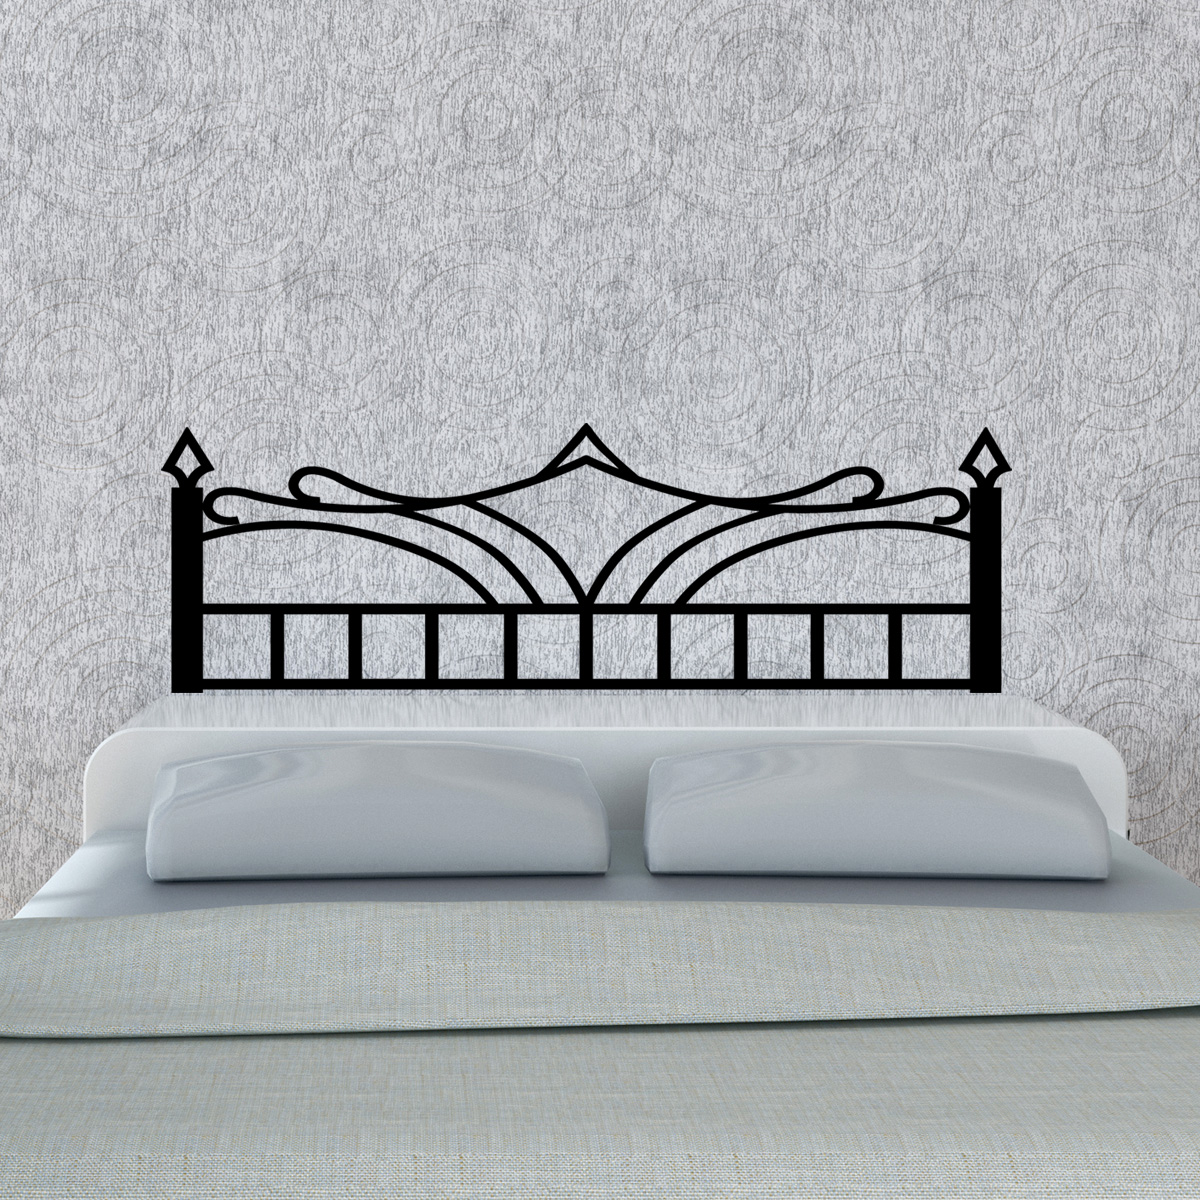 stickers muraux t tes de lit sticker mural fer forg lit double ambiance. Black Bedroom Furniture Sets. Home Design Ideas